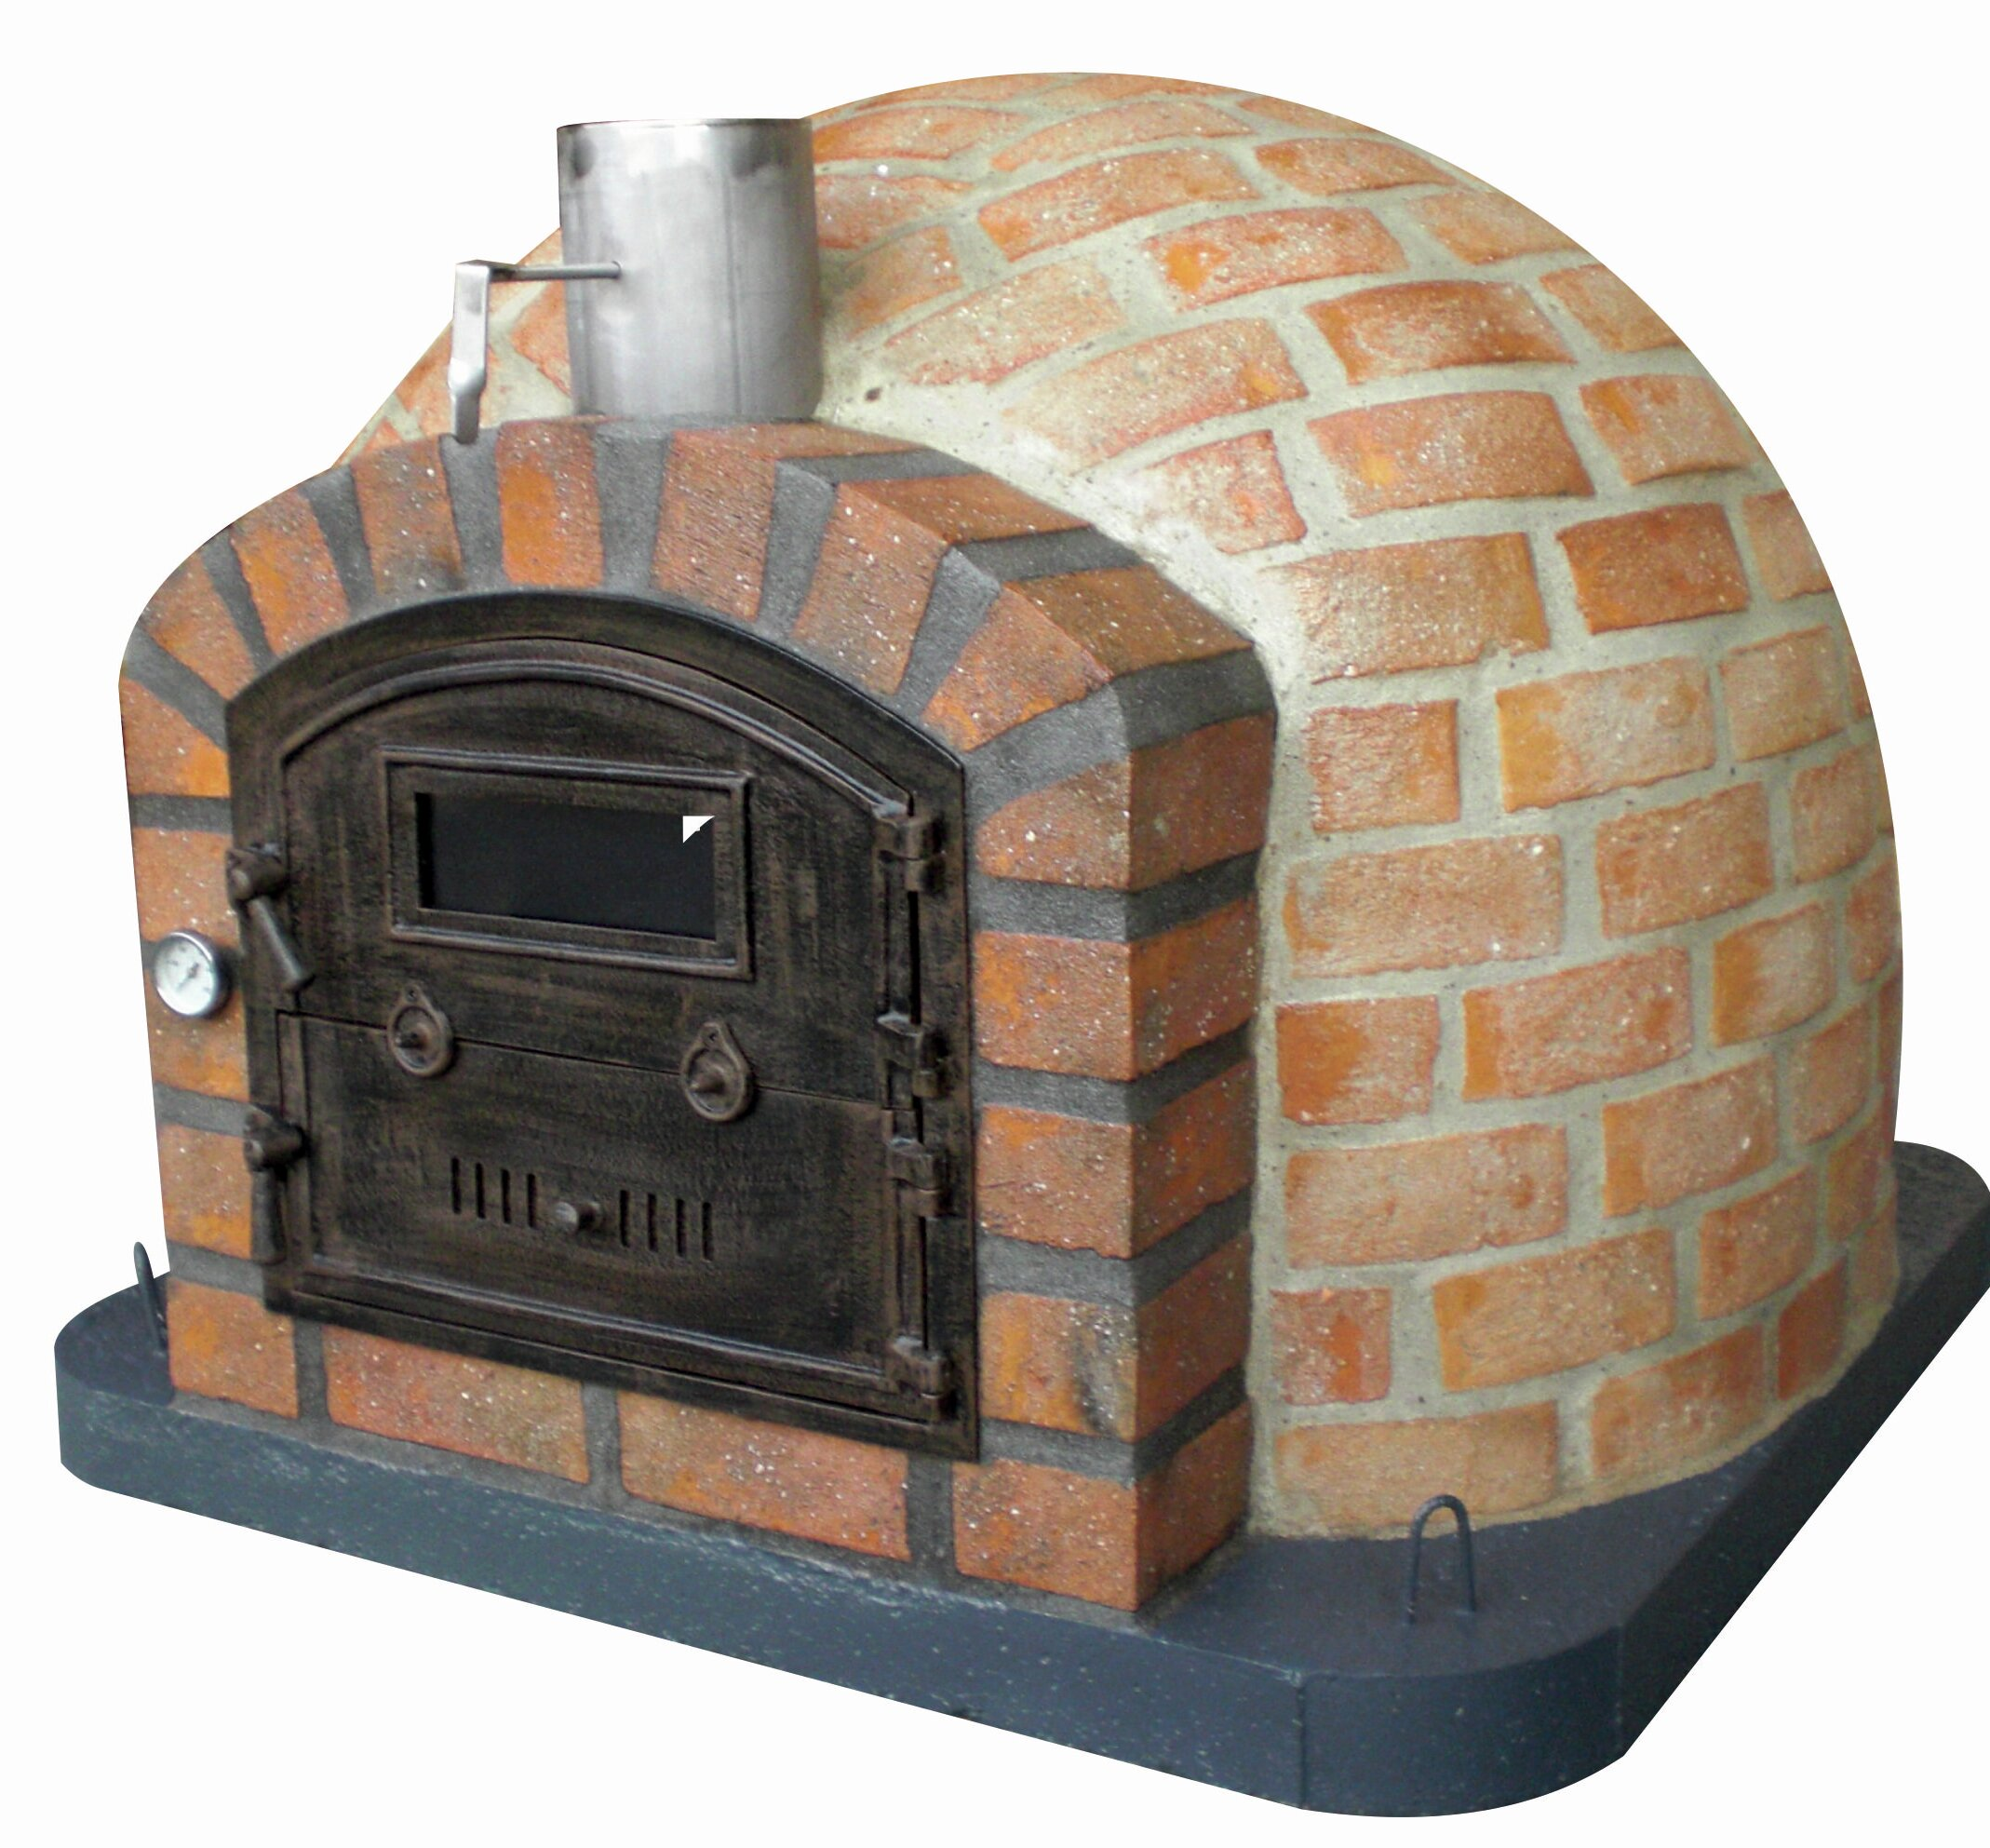 Authentic Pizza Ovens Lisboa Premium Pizza Oven Wayfair